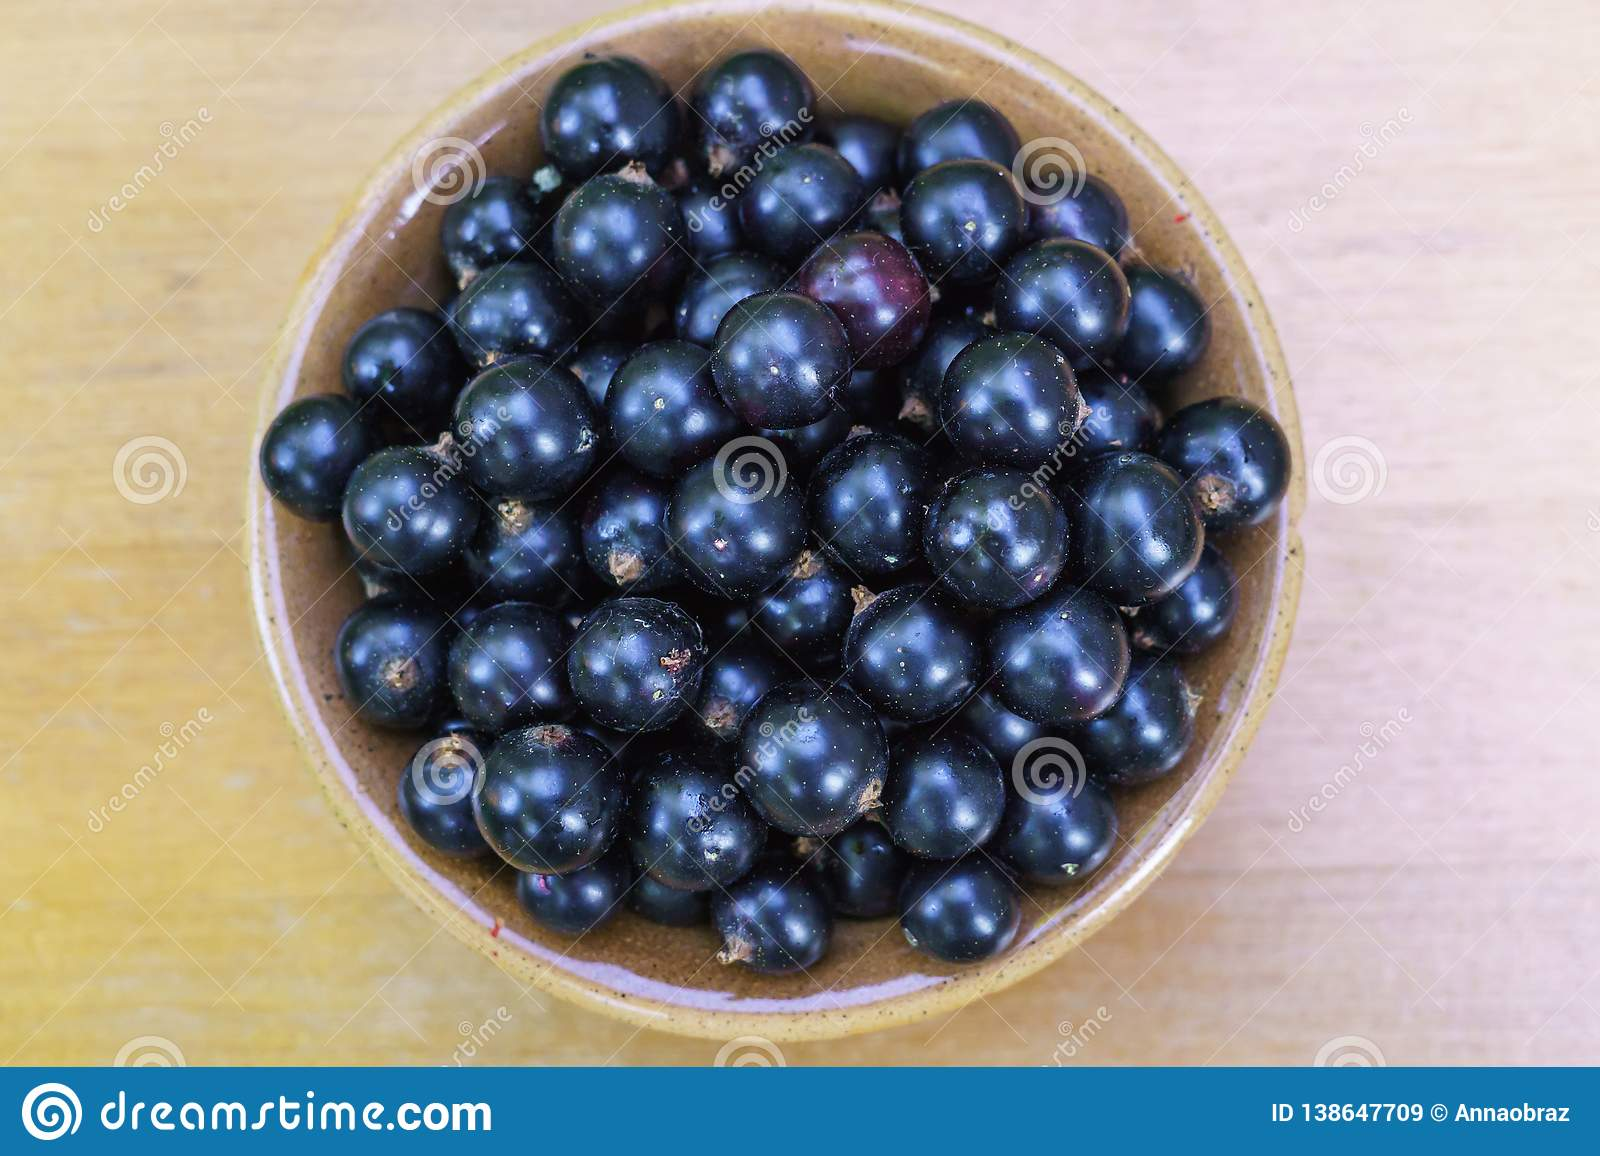 Delicious, fragrant black currant berries in a bowl on the table